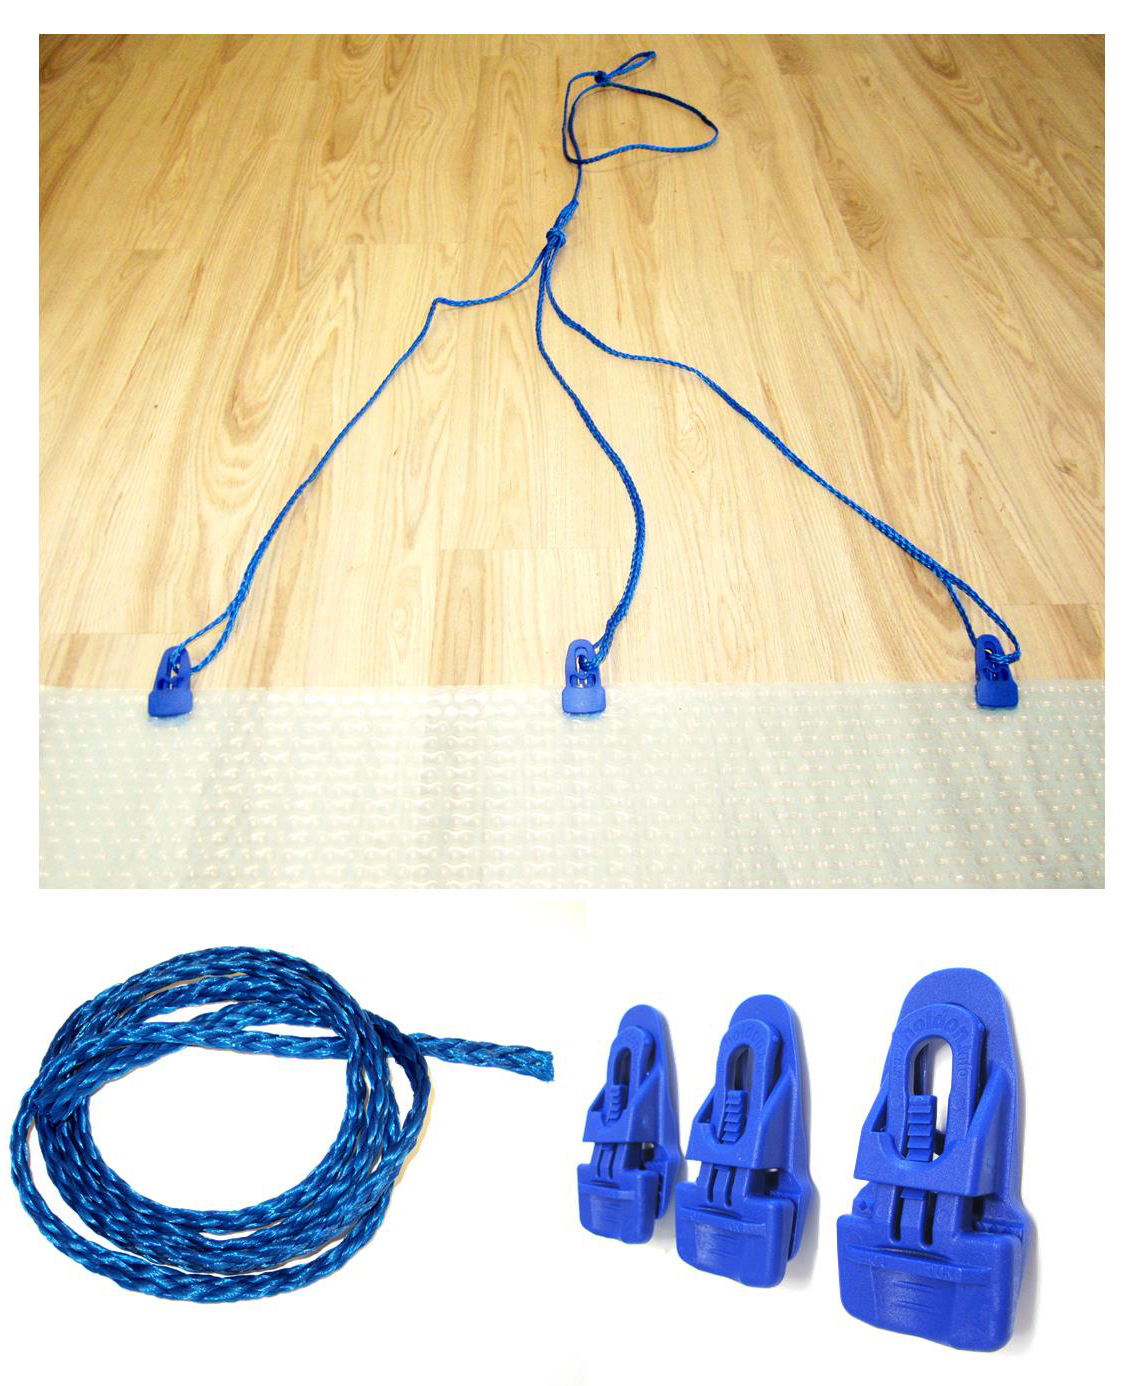 towing cord kit for thermal covers pool covers. Black Bedroom Furniture Sets. Home Design Ideas